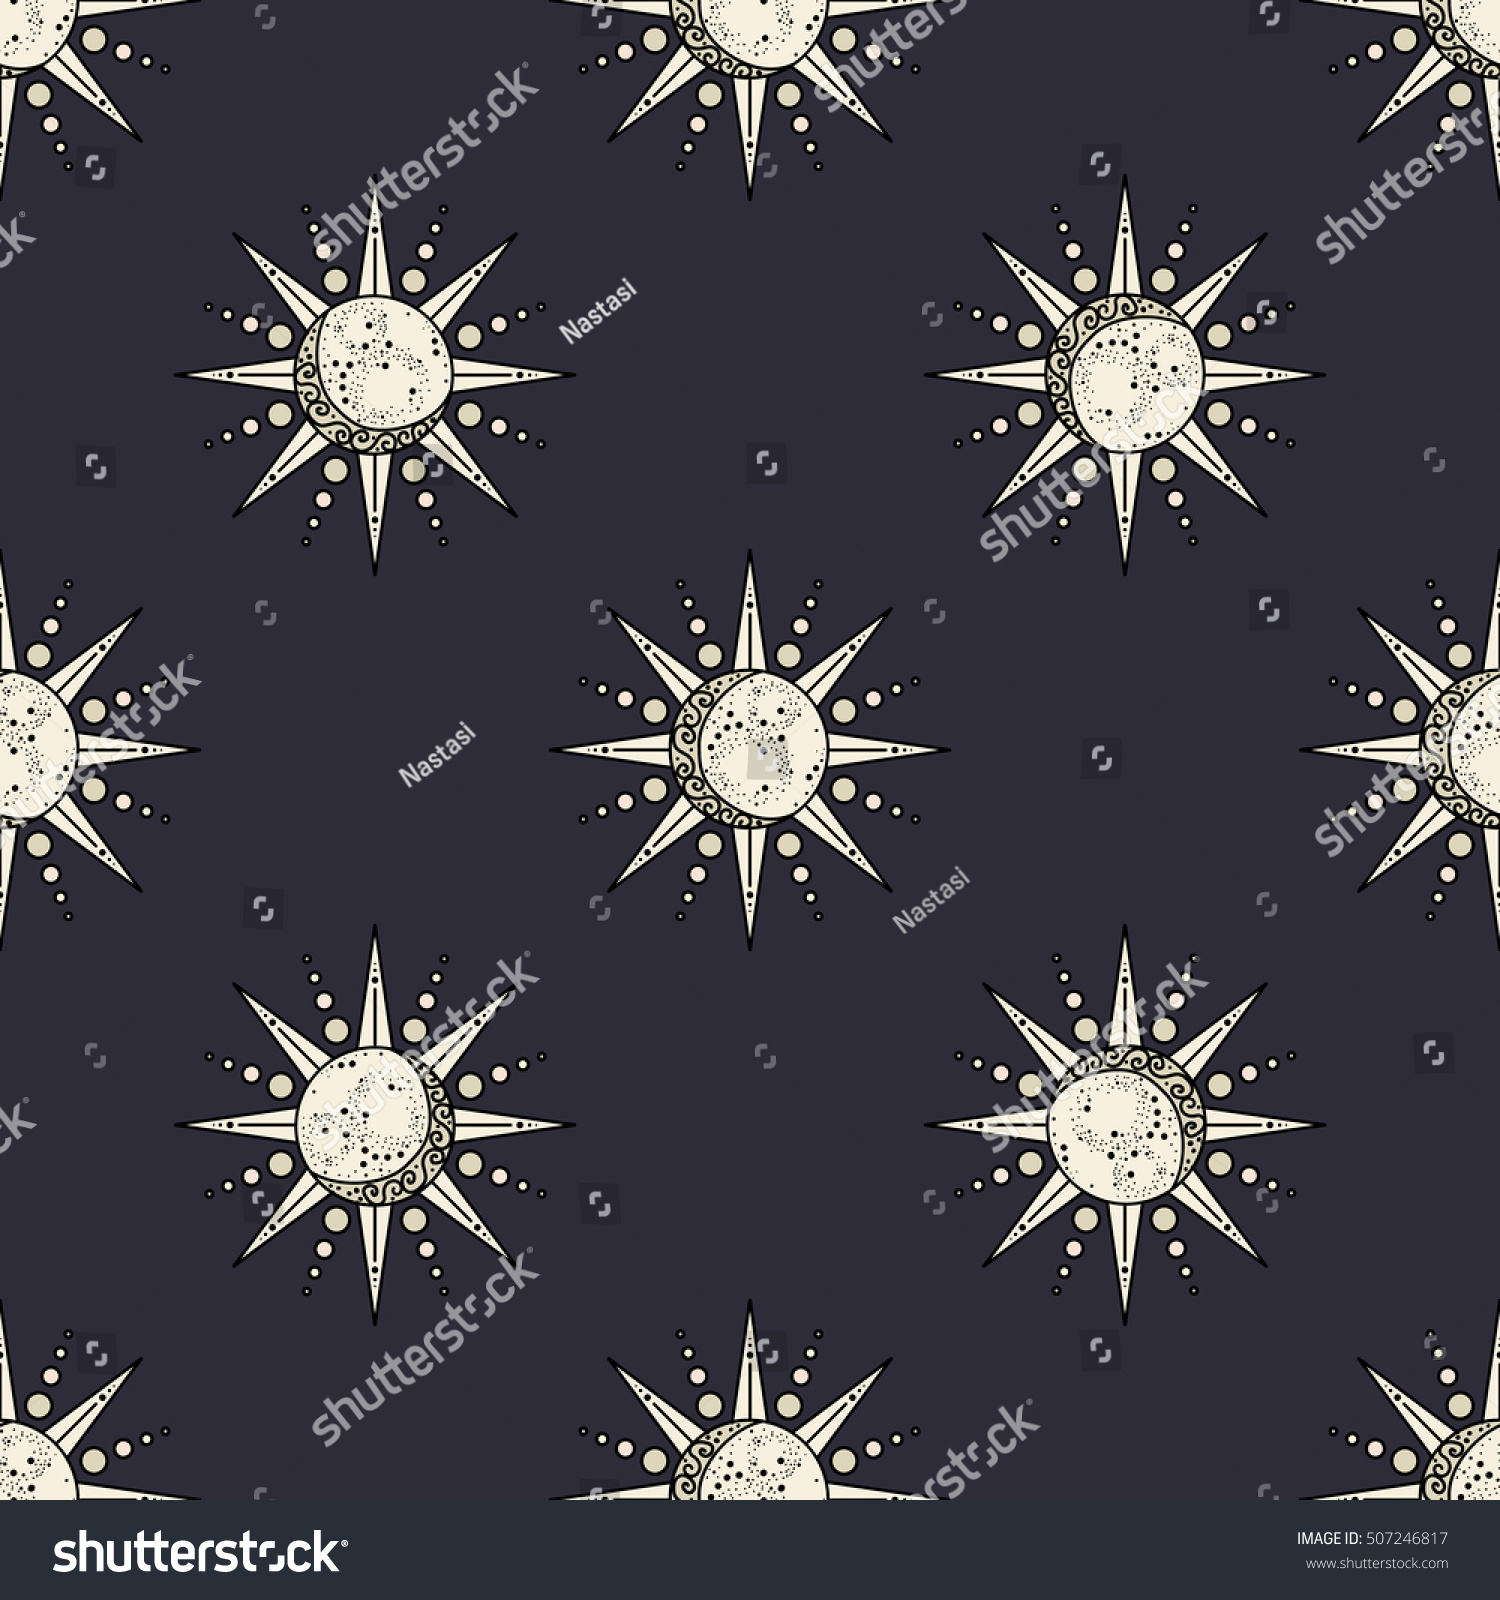 Sun moon symbol sun moon pattern stock vector 507246817 shutterstock sun and moon symbol sun and moon pattern sun and moon background sun biocorpaavc Images